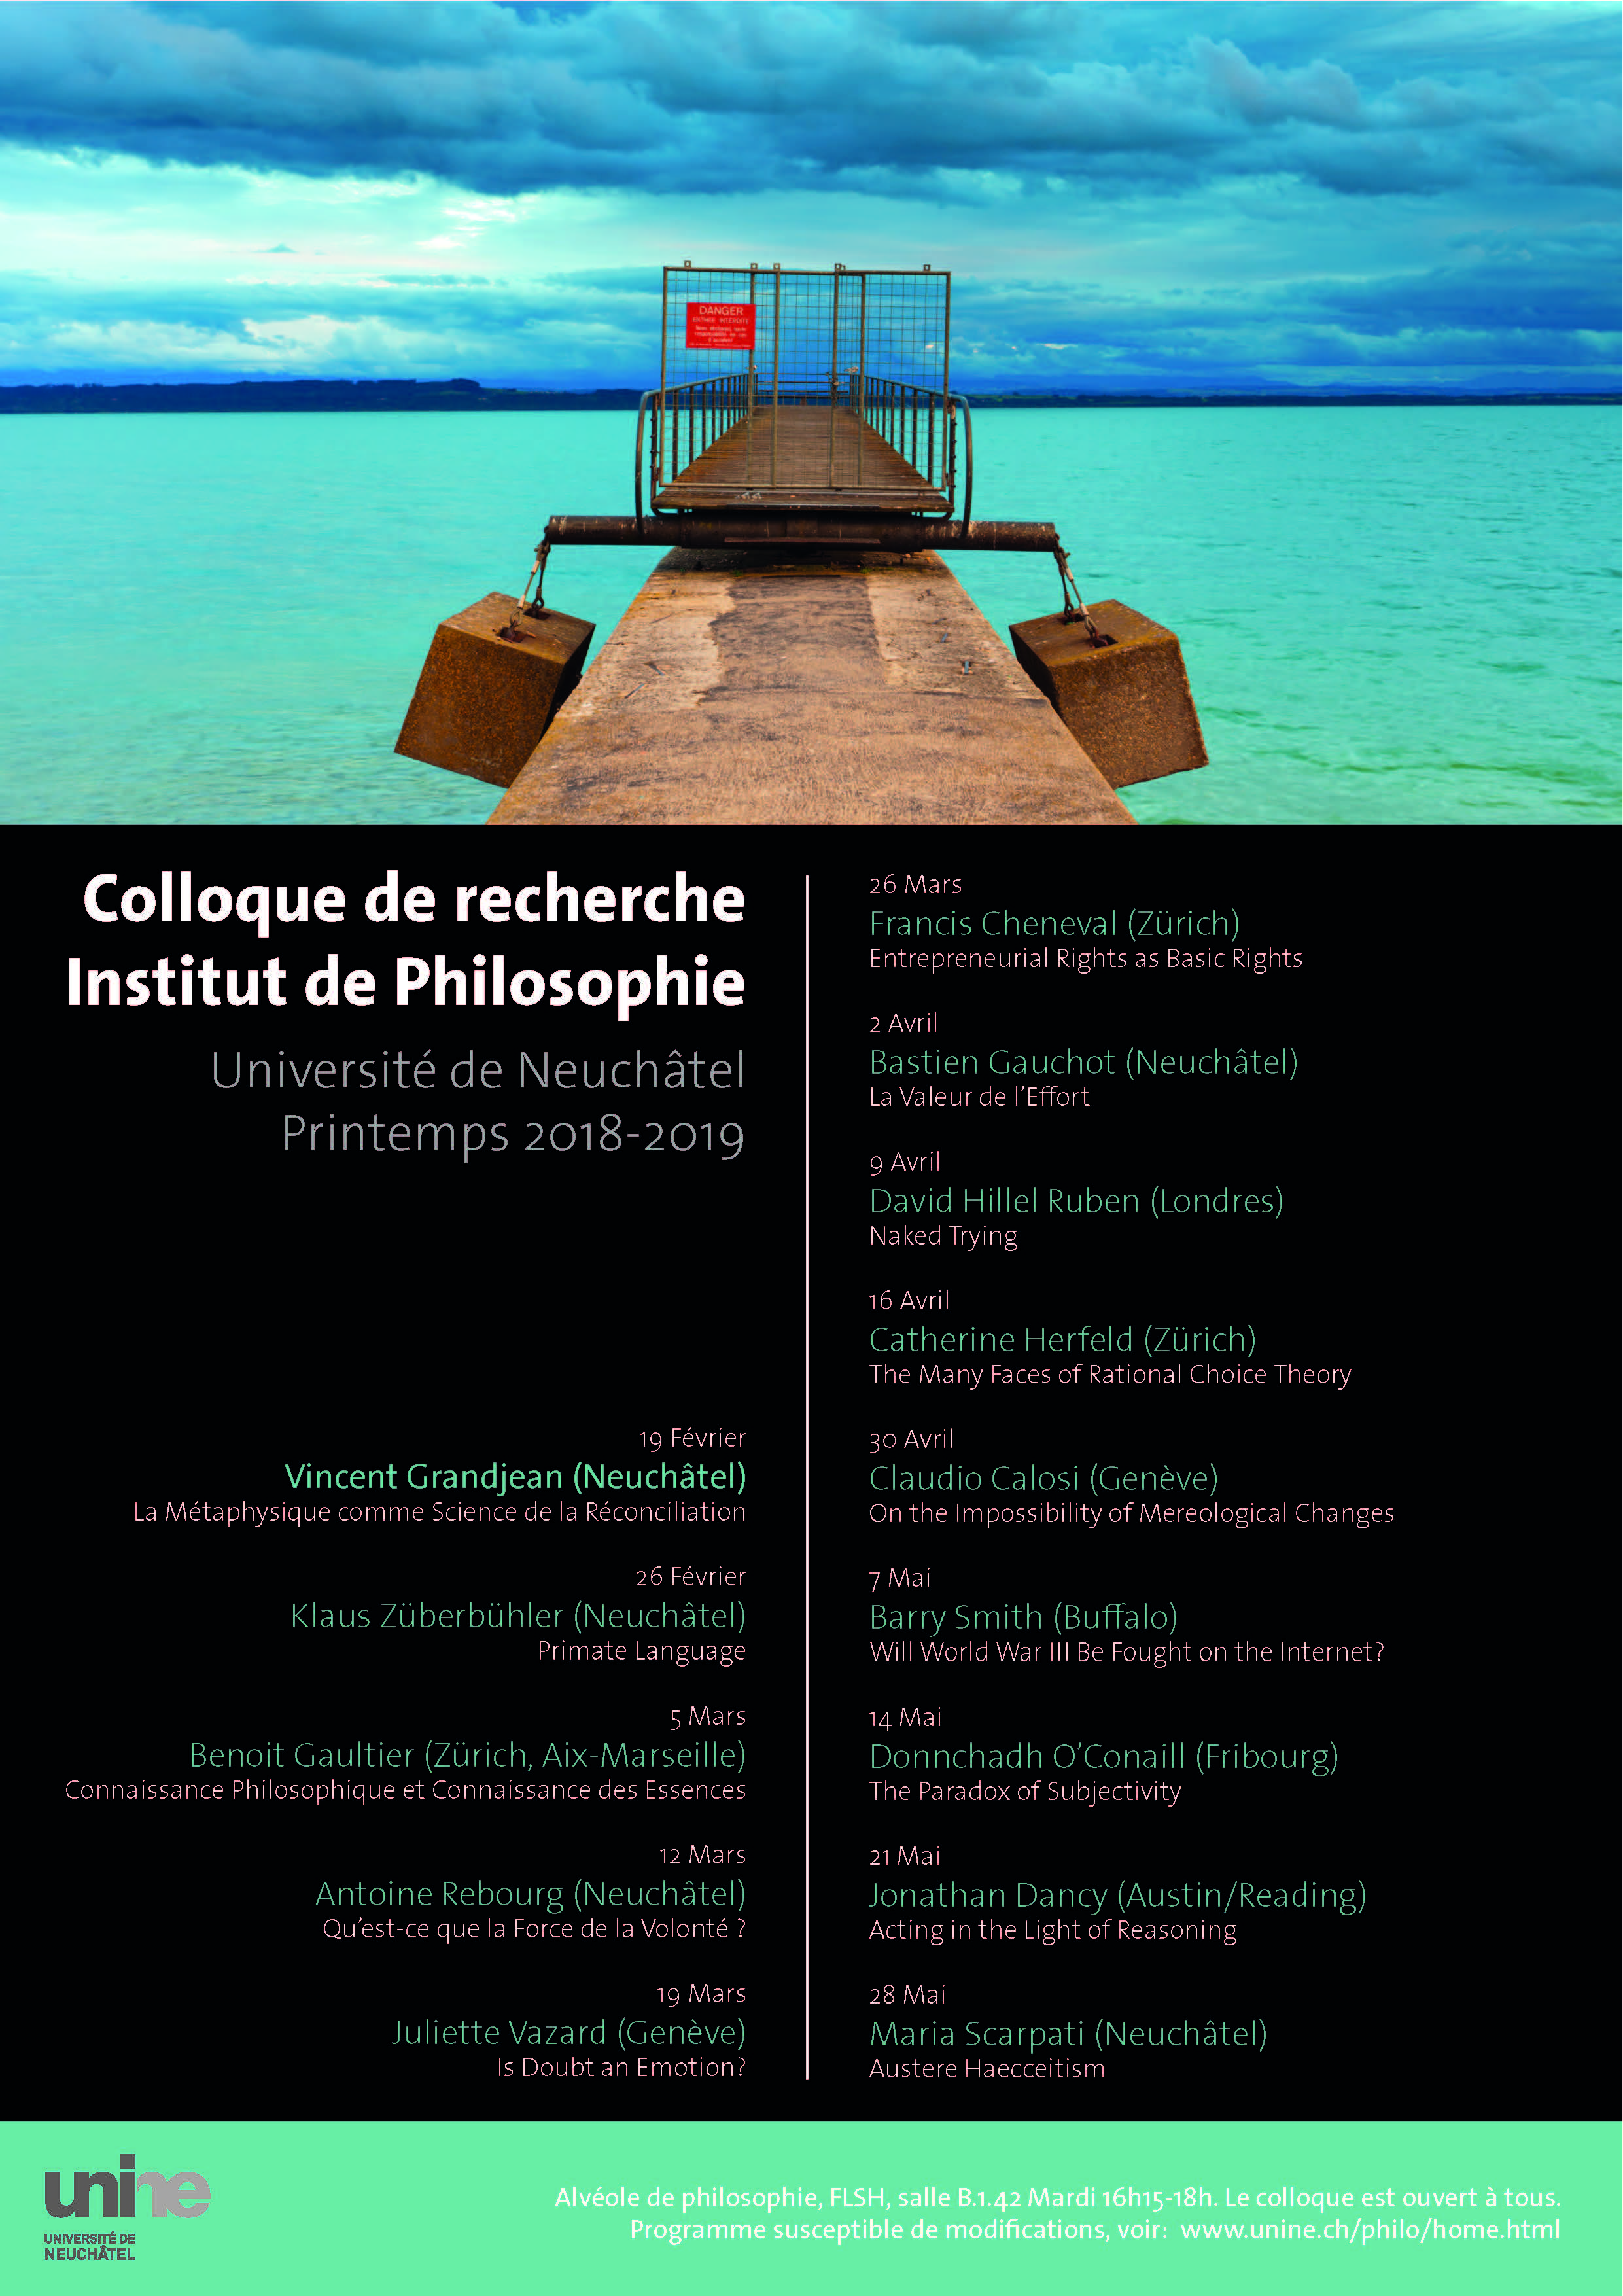 colloque de recherche printemps 2018-2019 light.jpg